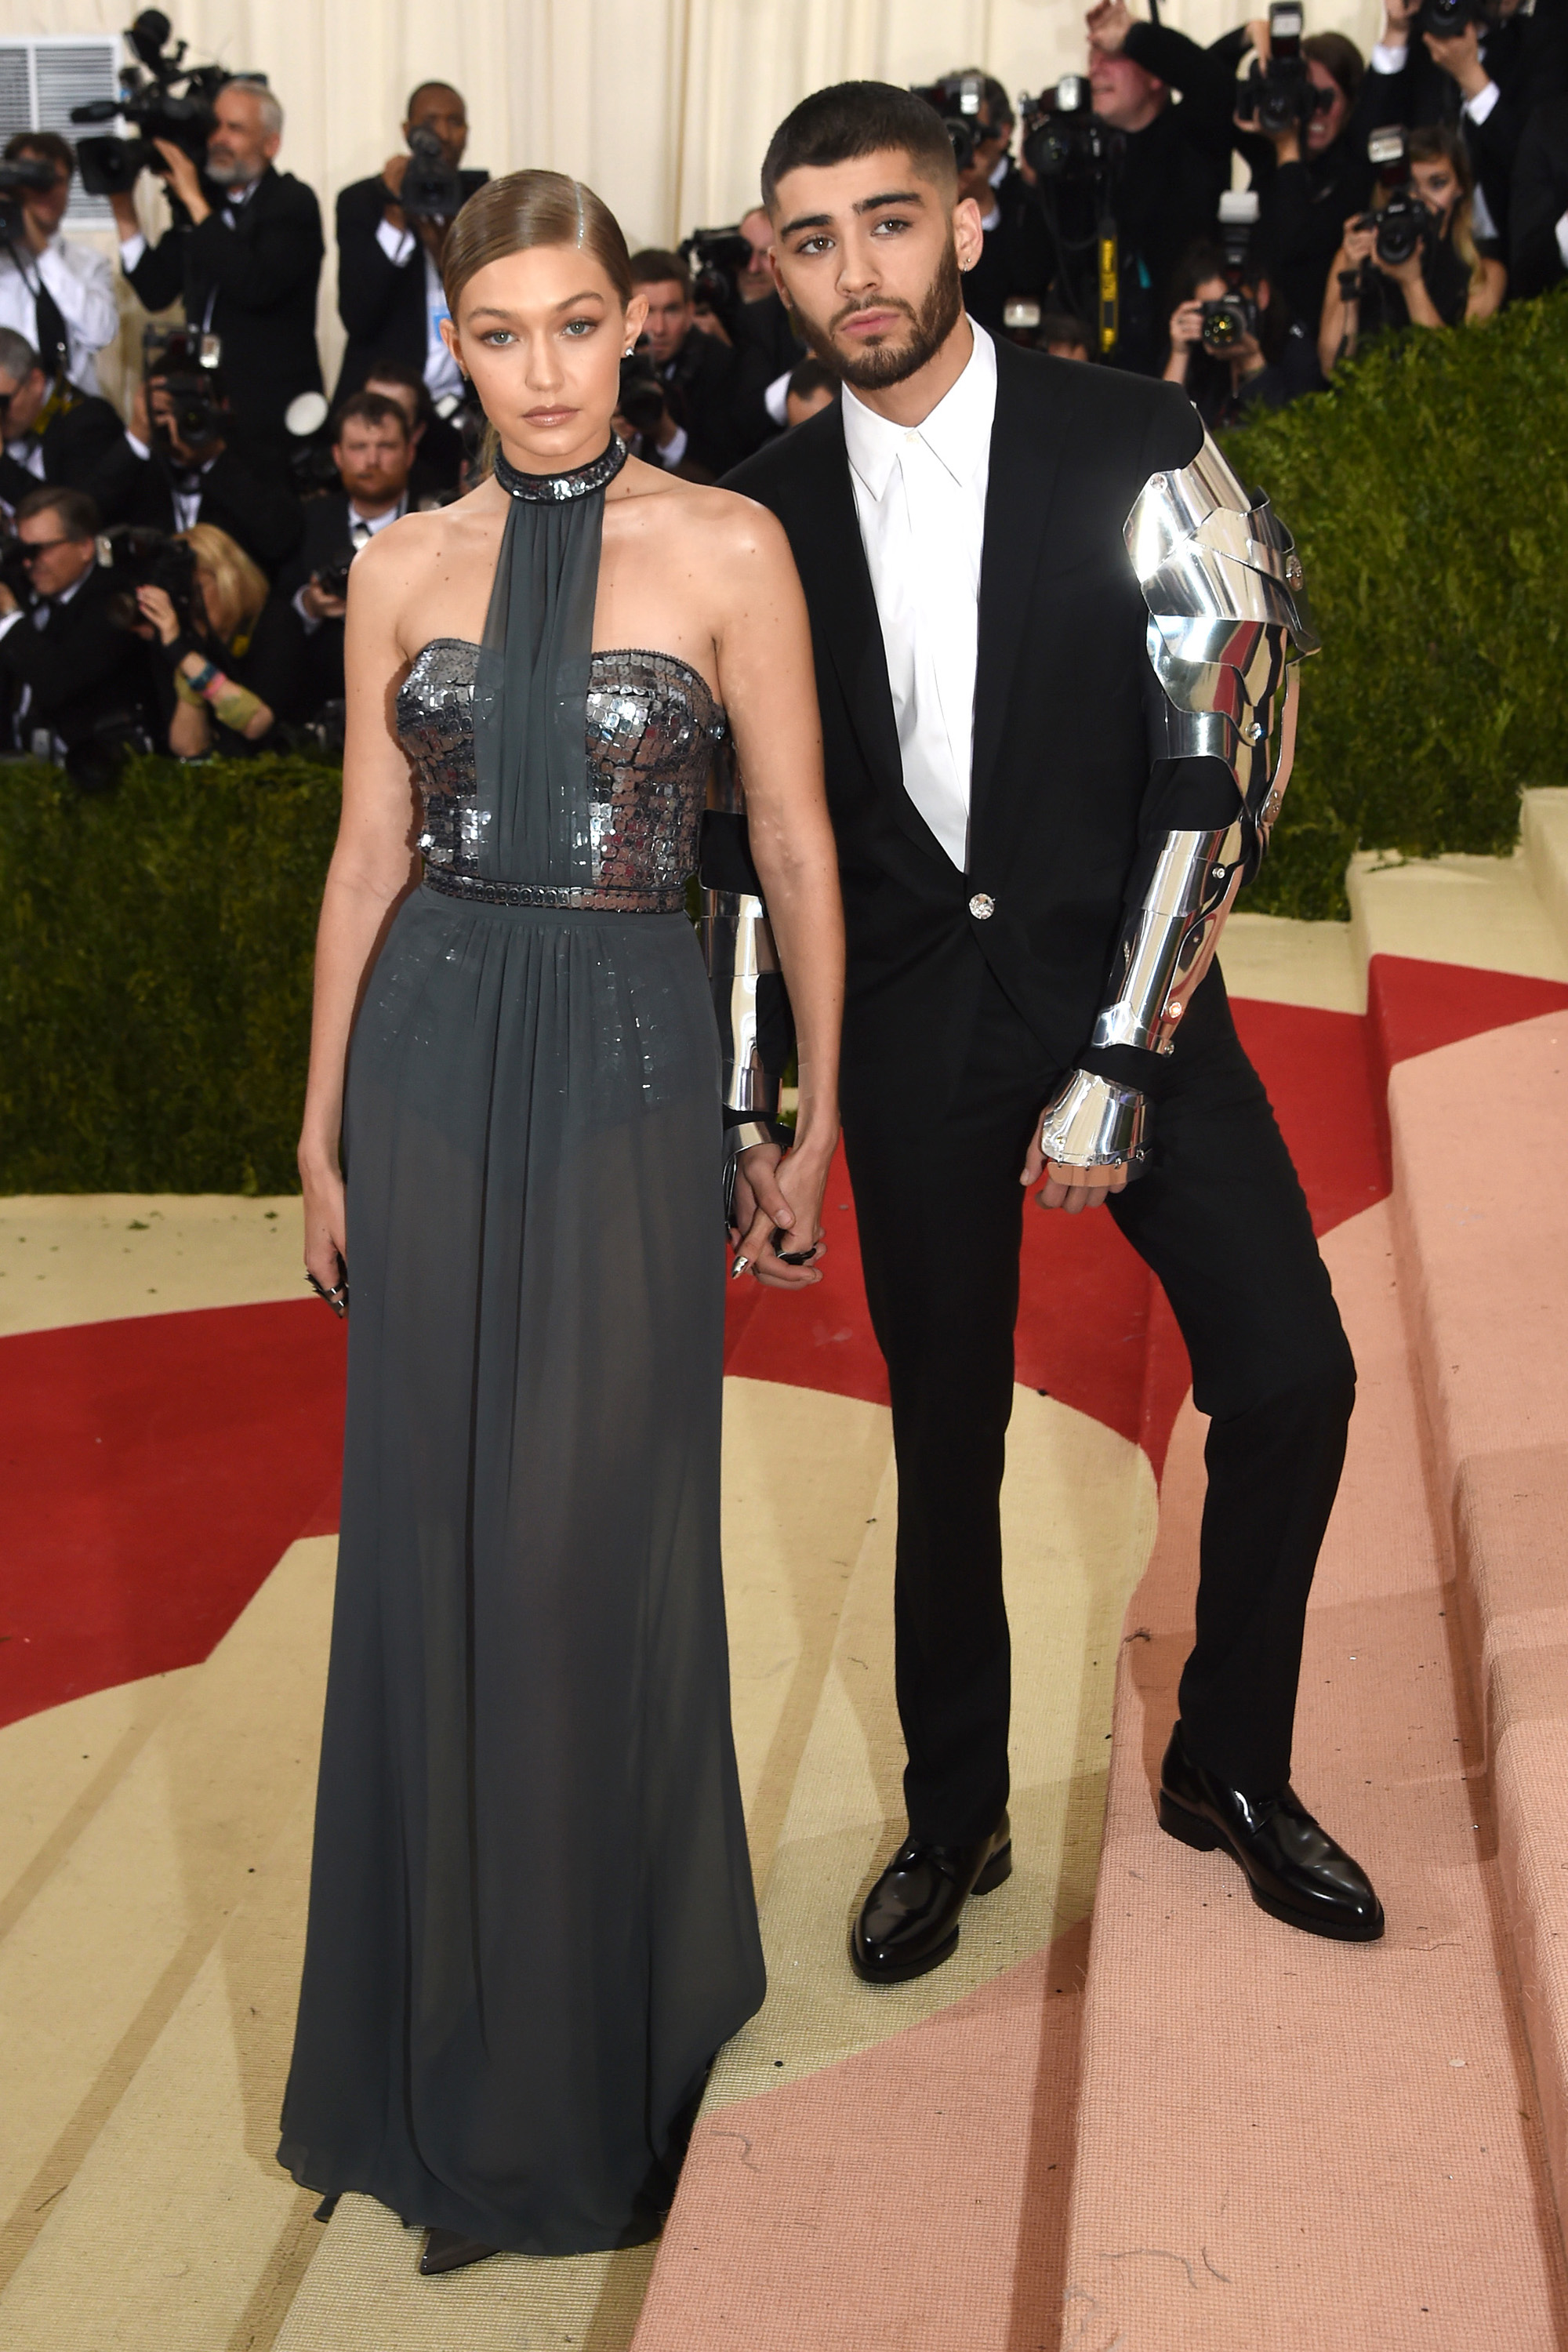 Red Carpet Dresses at Met Gala 2016 - Dresses and Gowns From the Met Gala Red Carpe